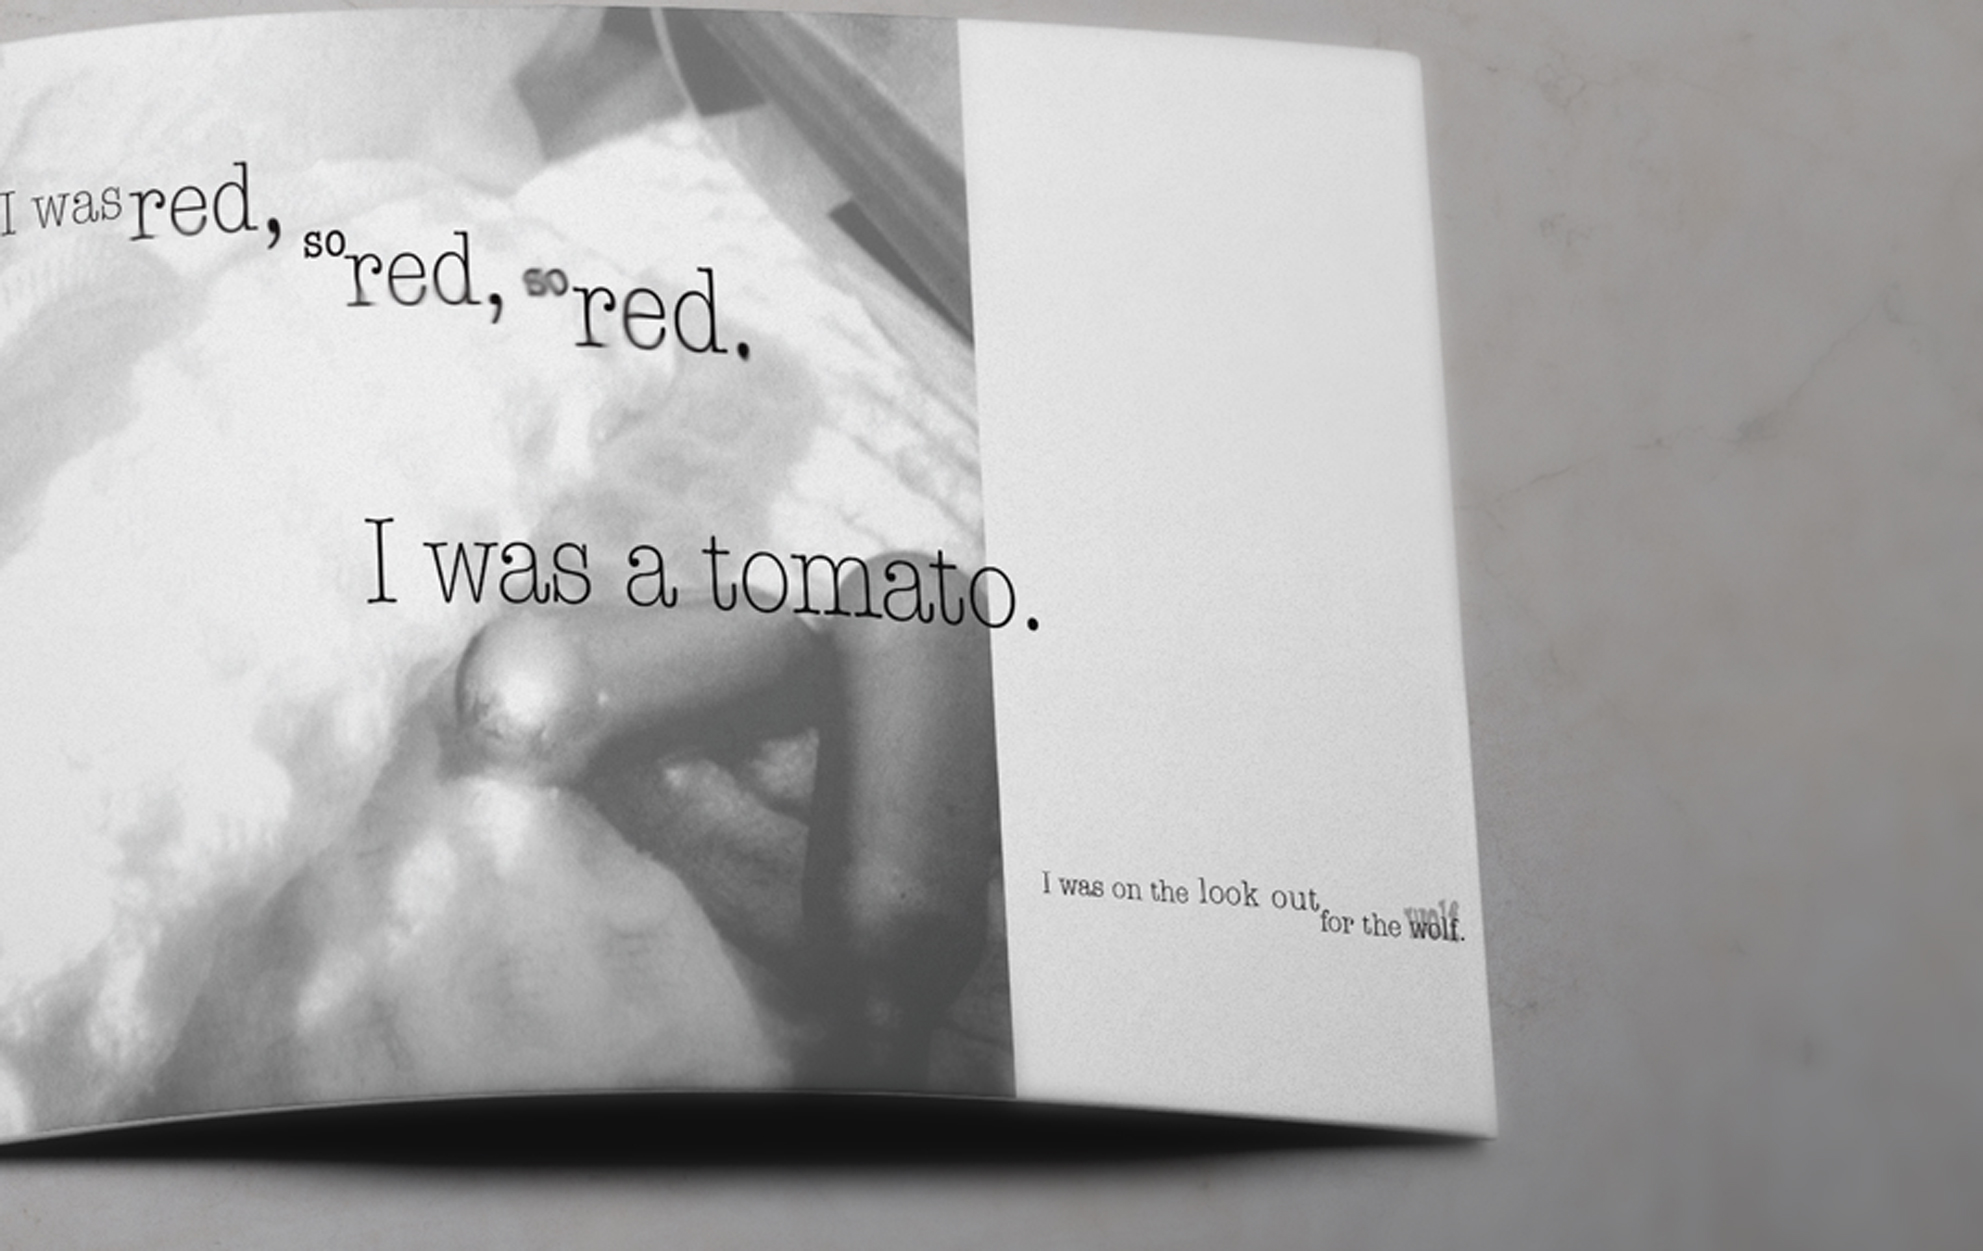 'Little Red Riding Hood' a poem by Ania Walwicz.